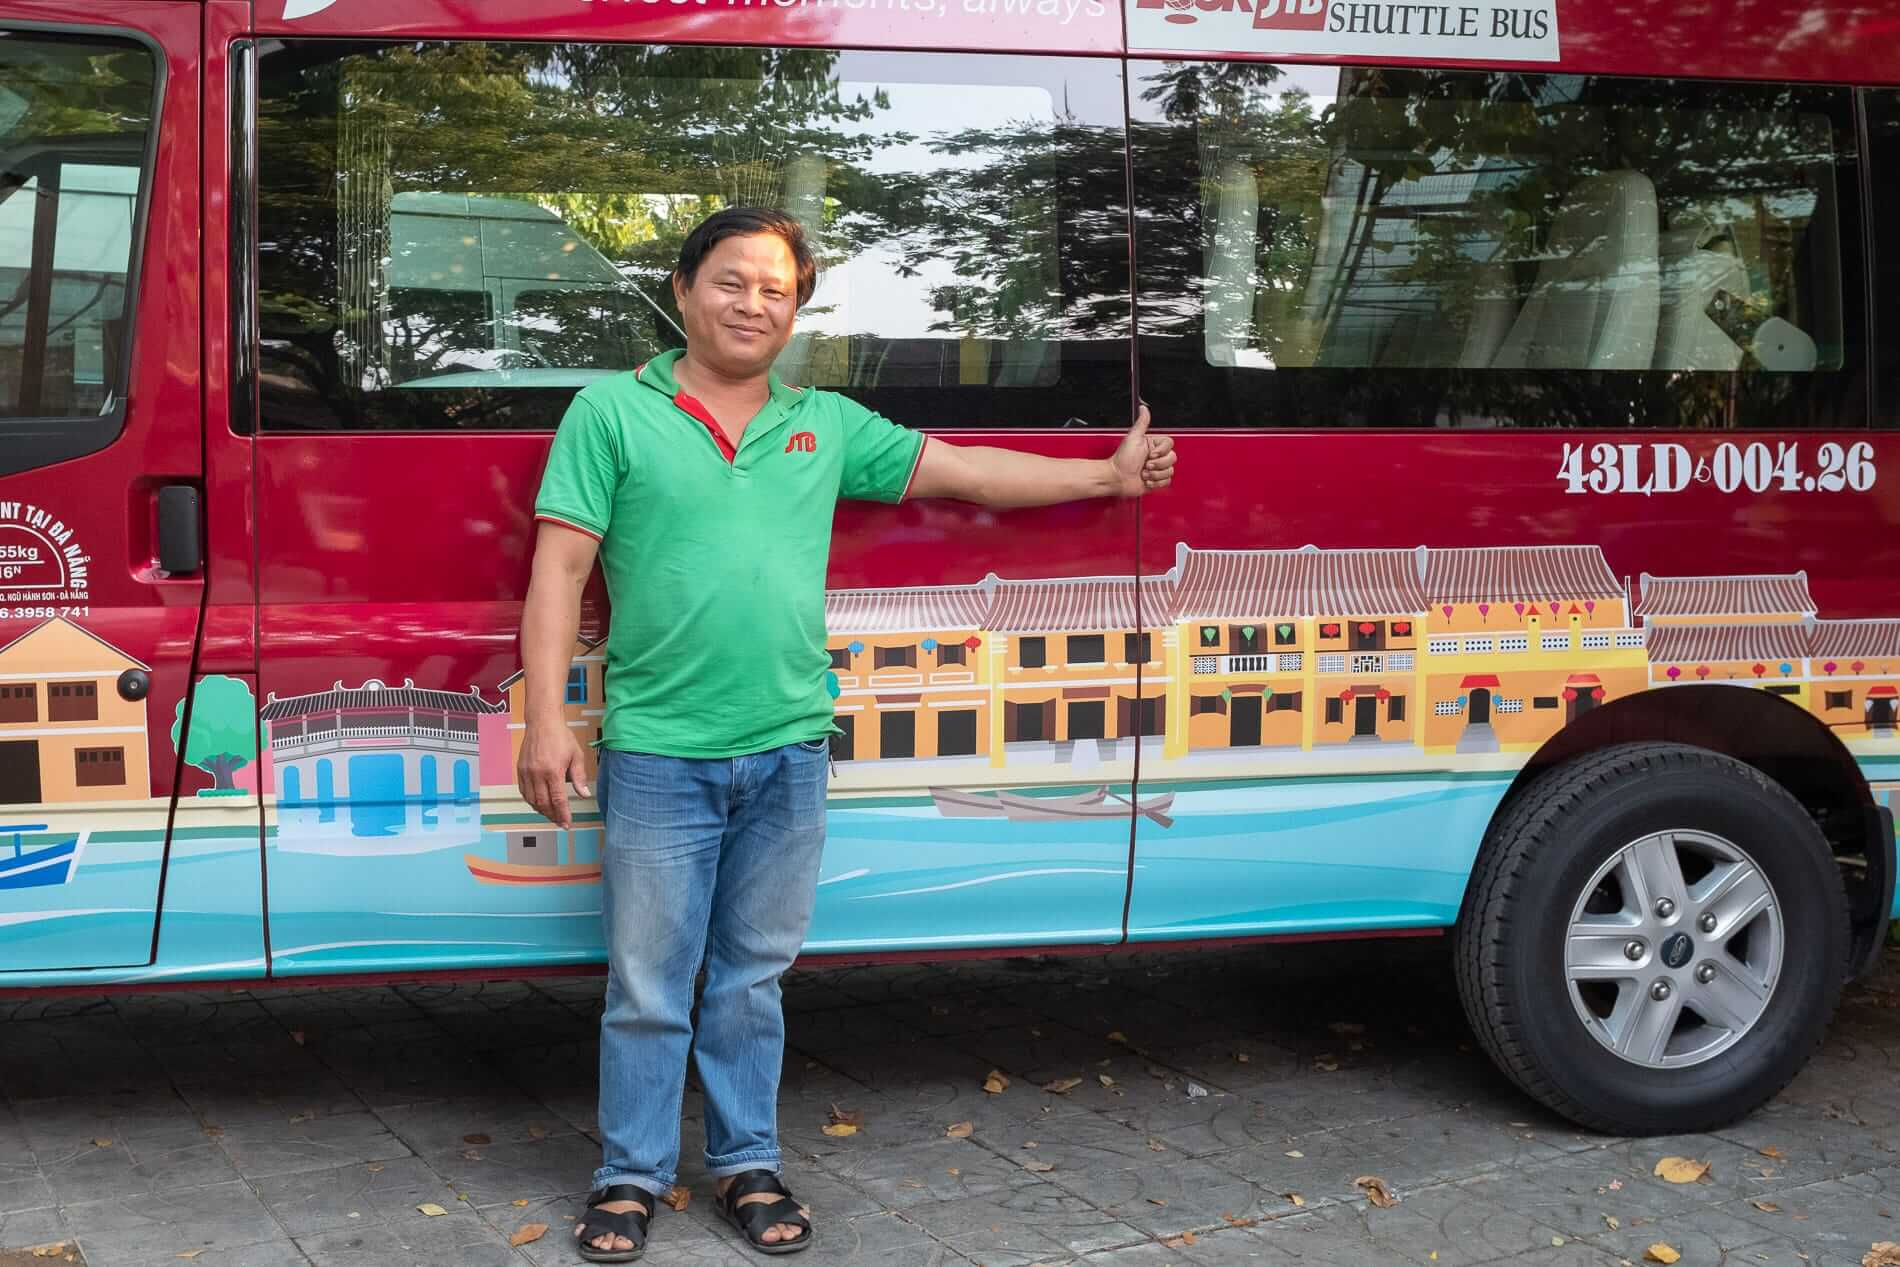 Minibus driver poses on his vehicle - Transfer Services